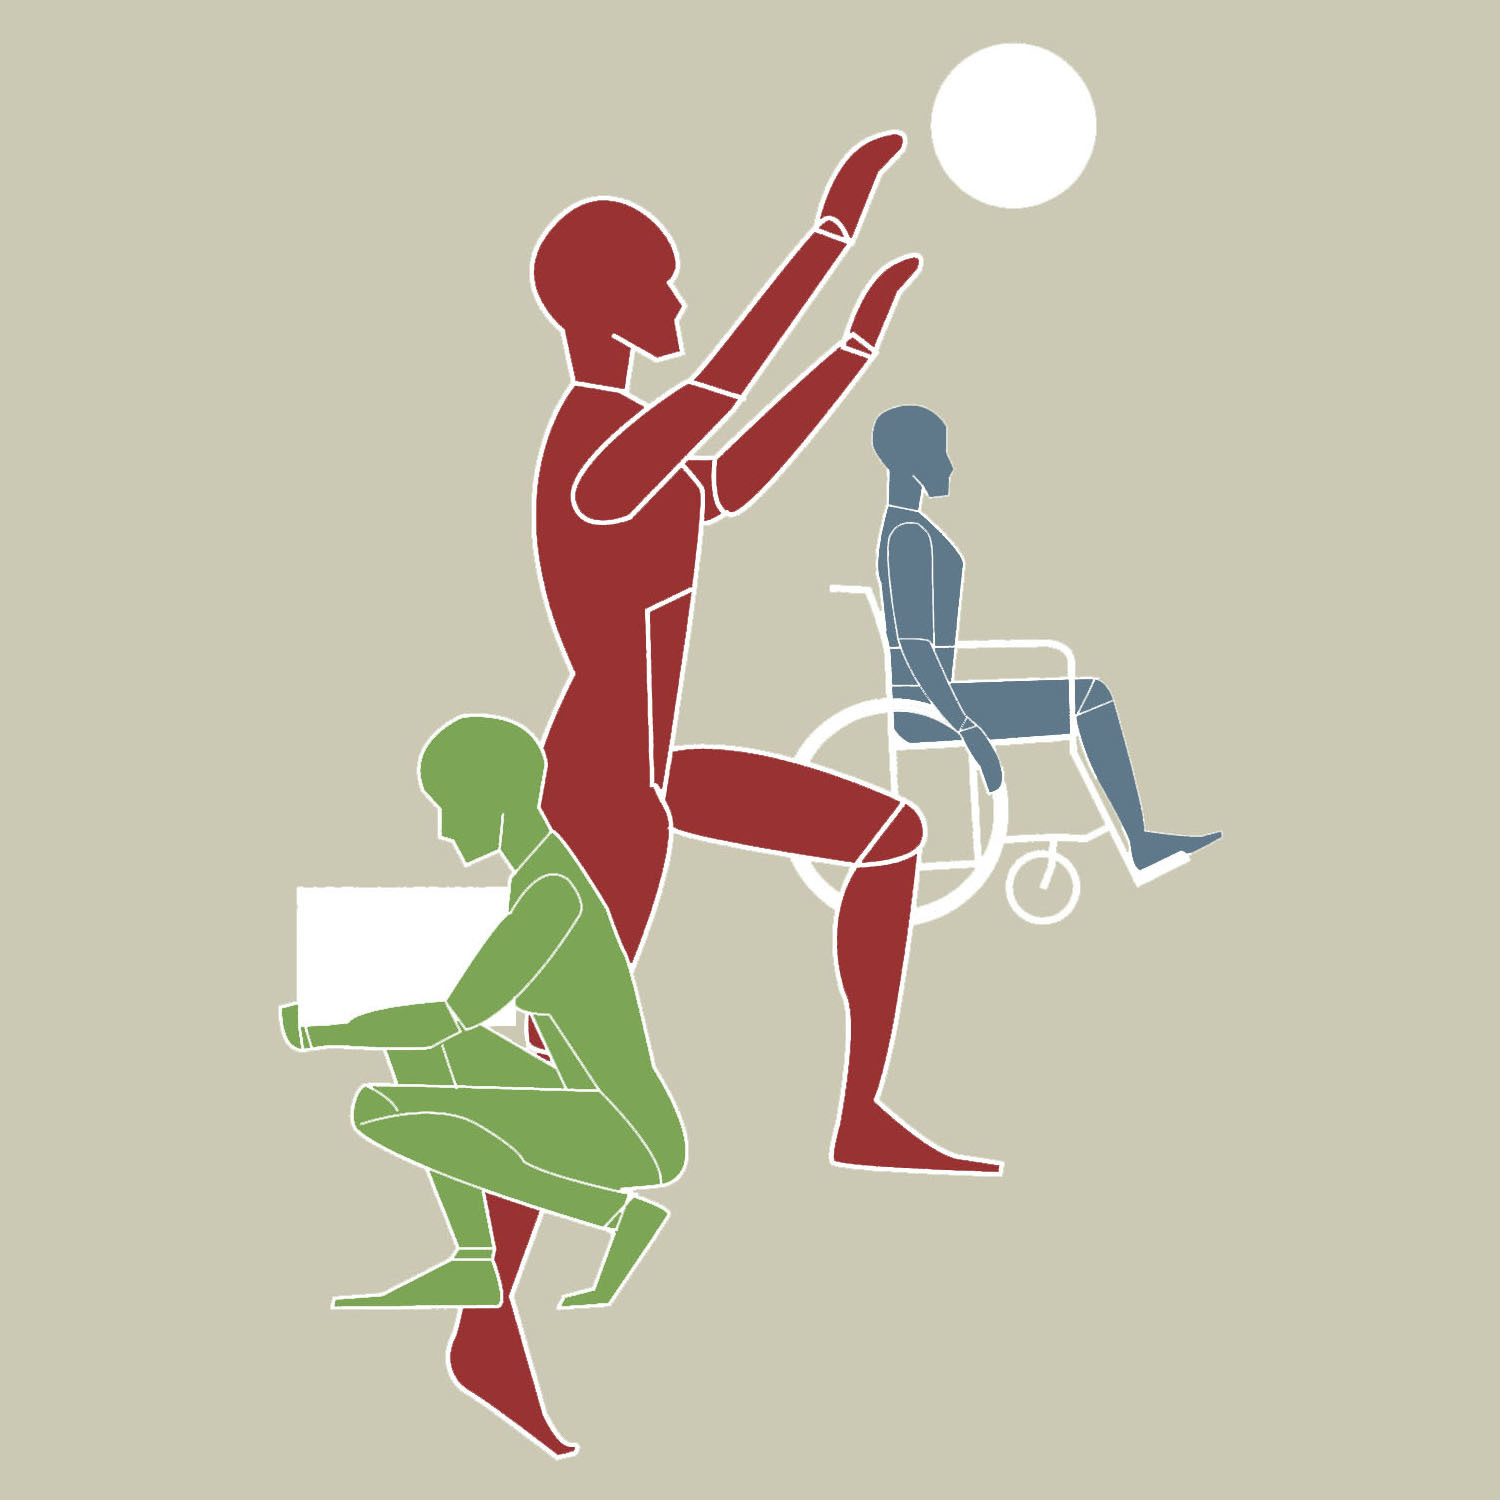 Graphic representing the 3 areas of Empowerment Ergonomics: Ergonomics, Accessibility and Wellness.